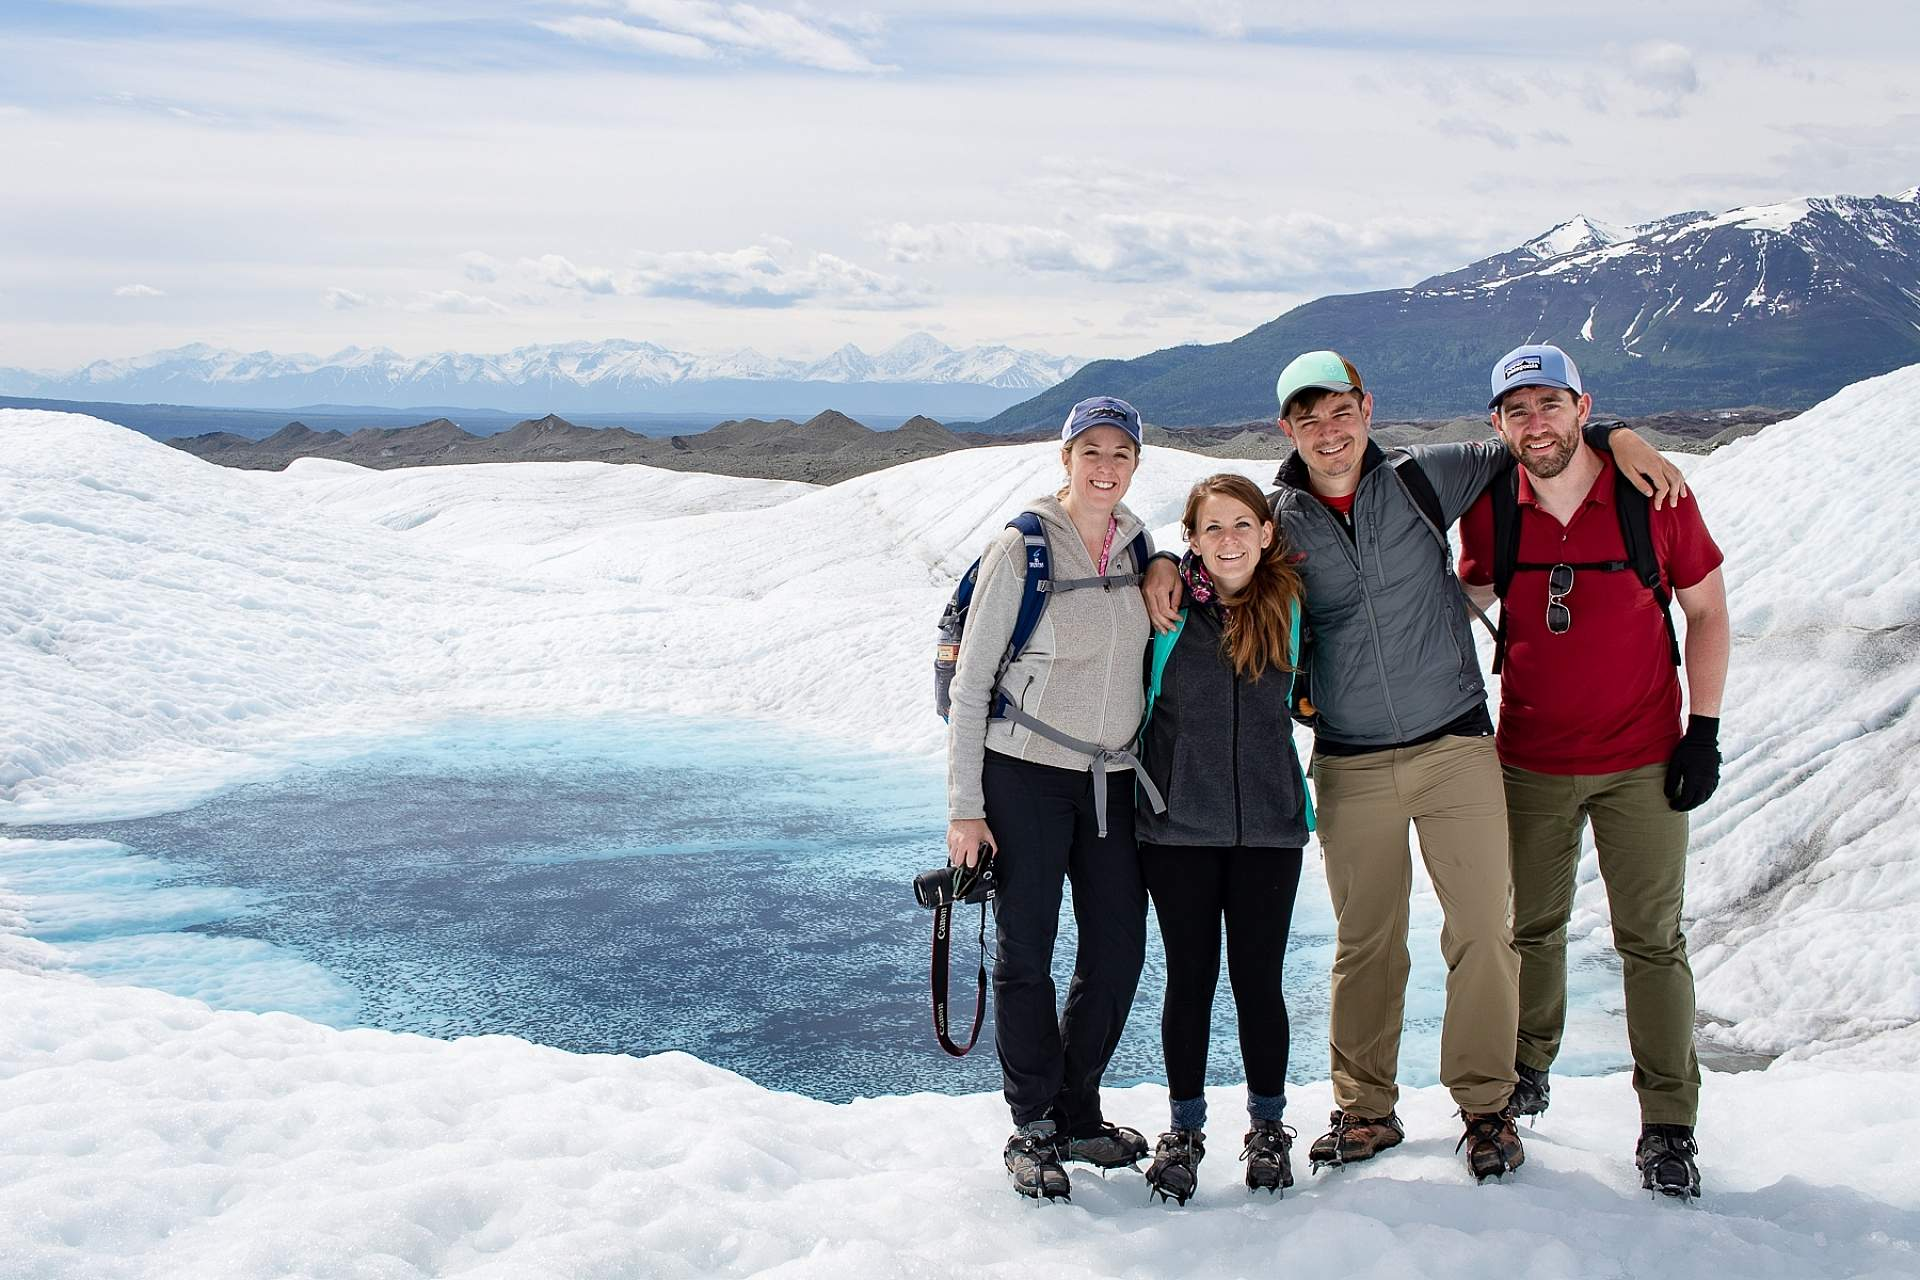 Alexyn and friends stand on the Root Glacier in Wrangell St. Elias National Park